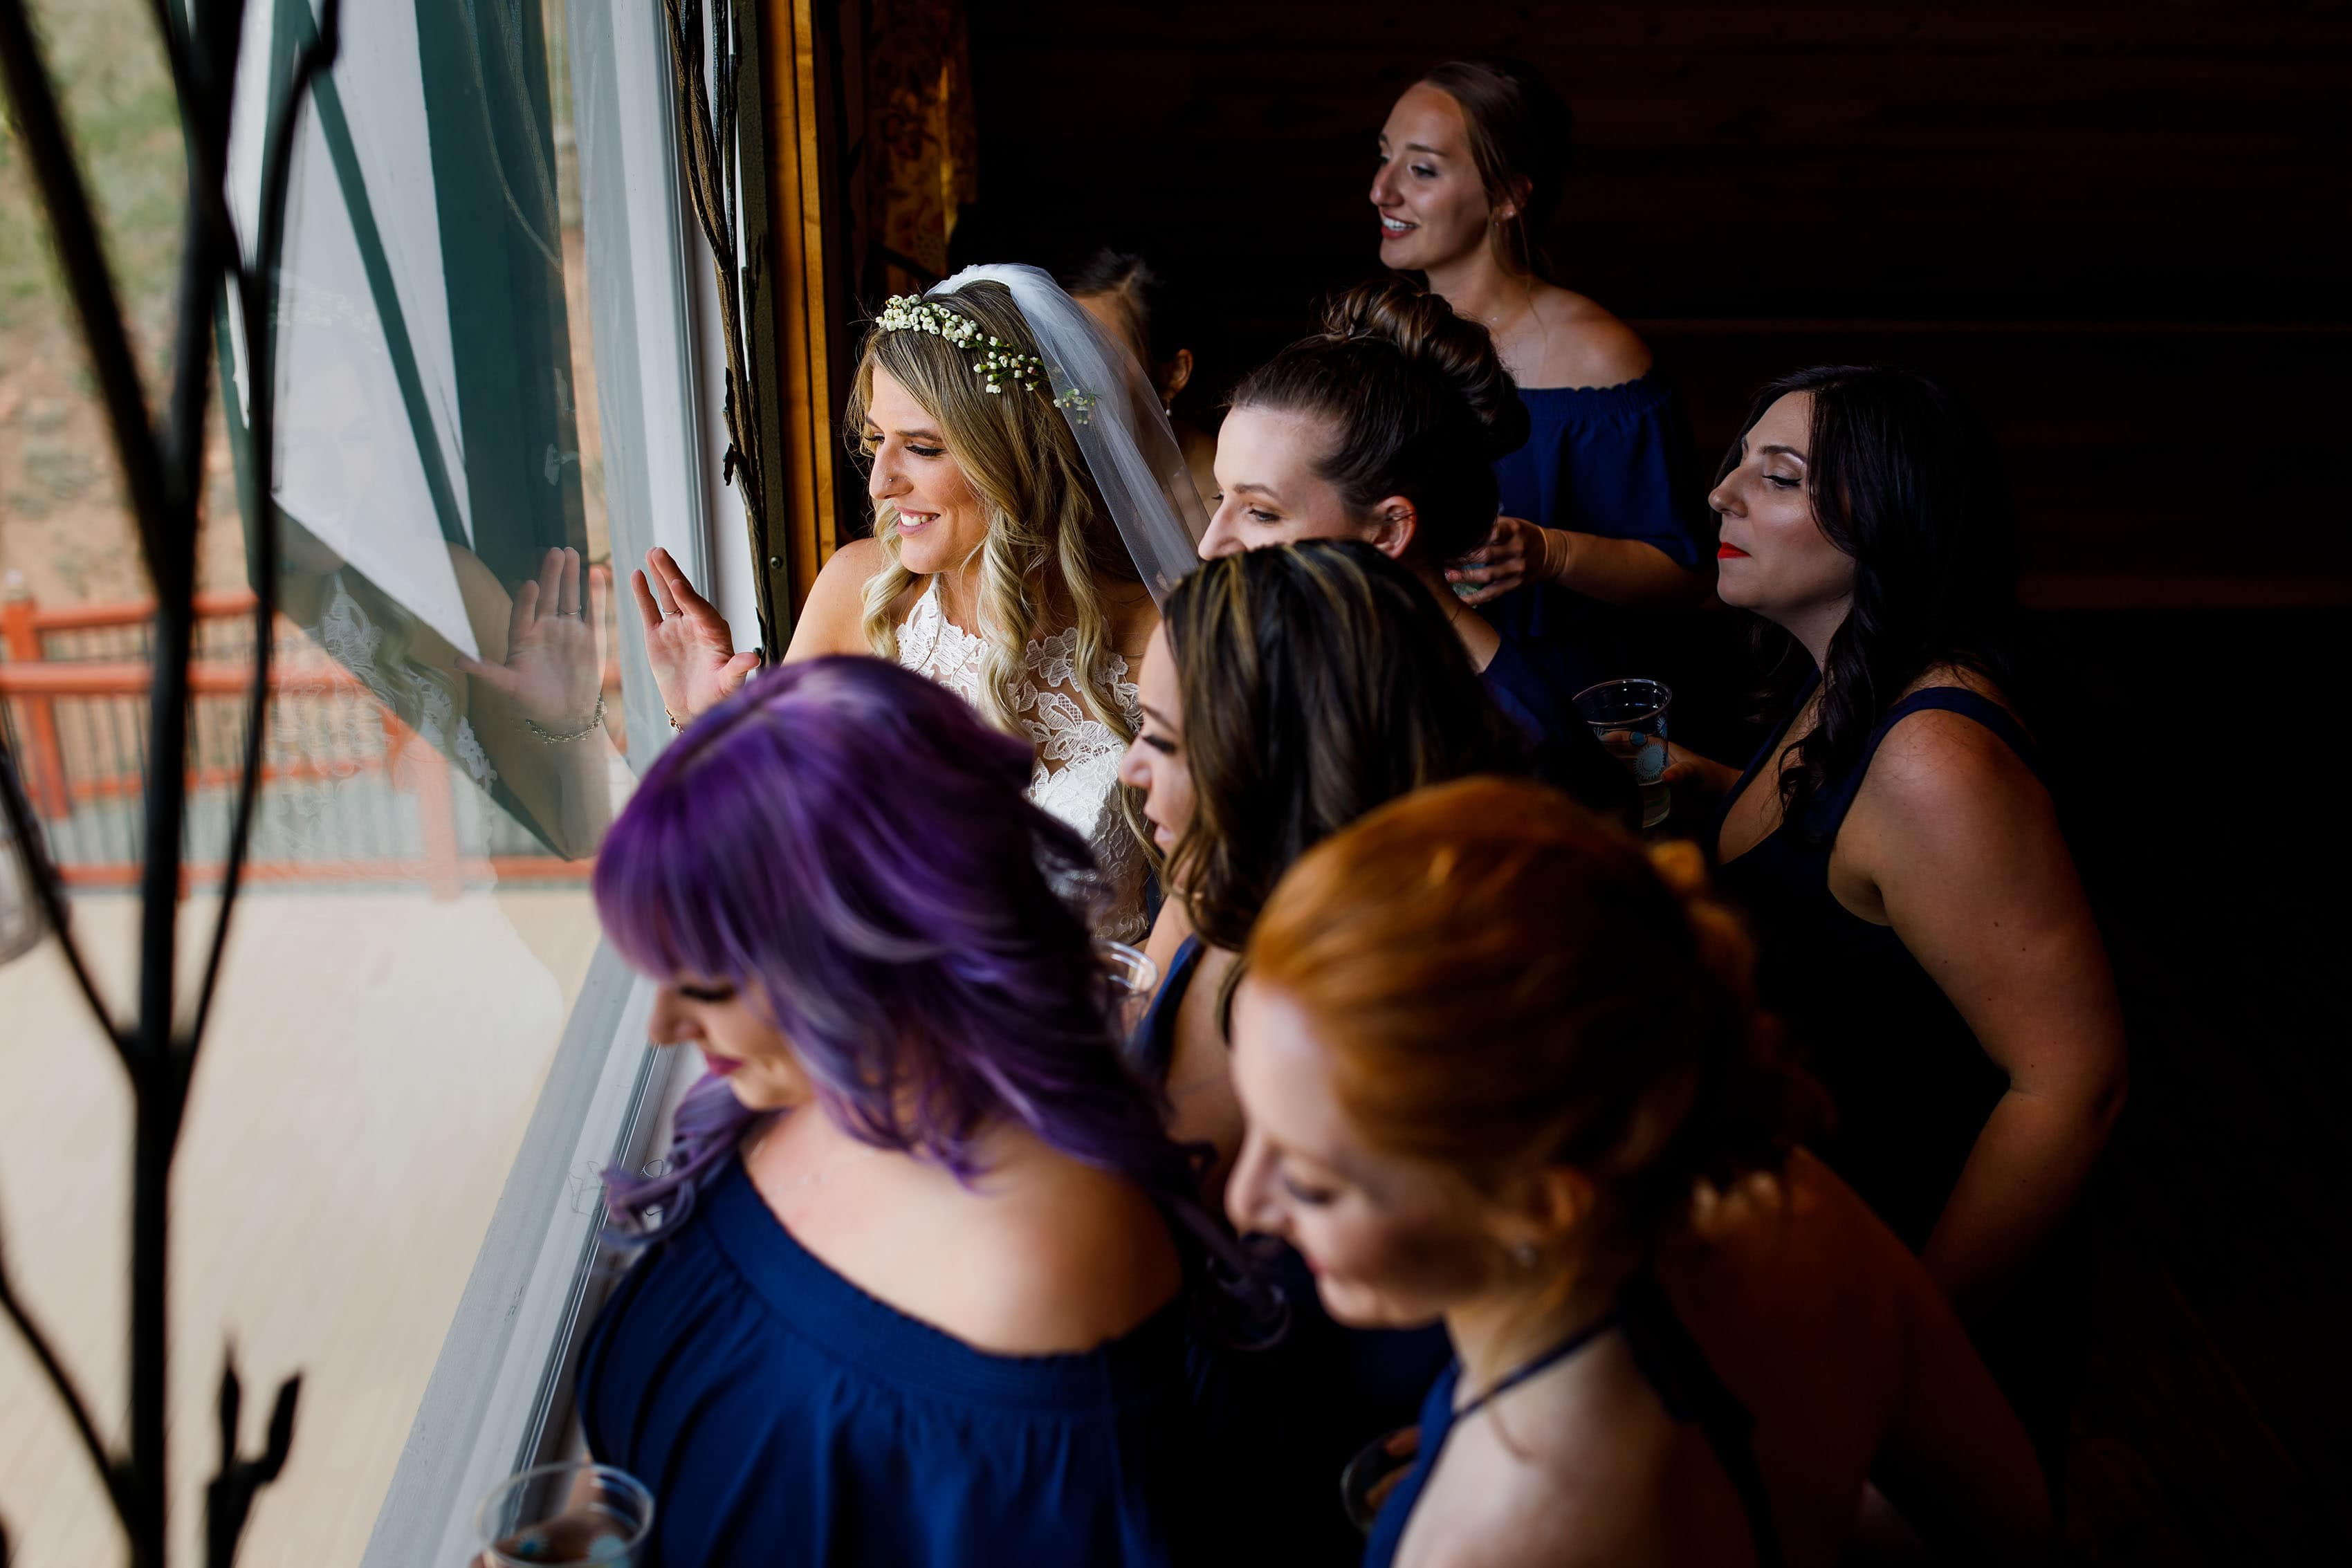 The bridal party wave out the window